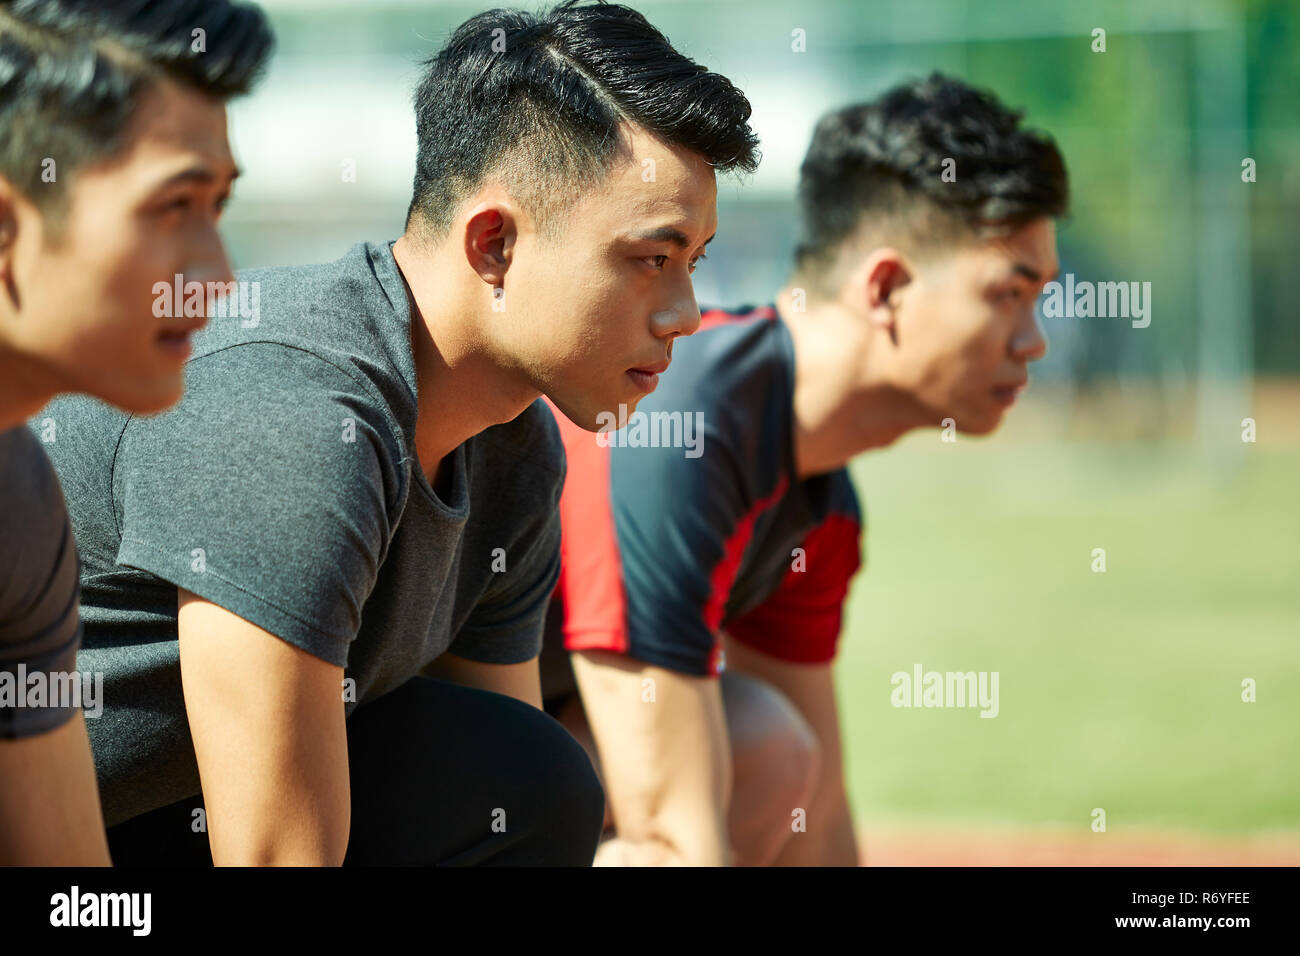 young asian track and field athletes sprinters setting on starting line. - Stock Image